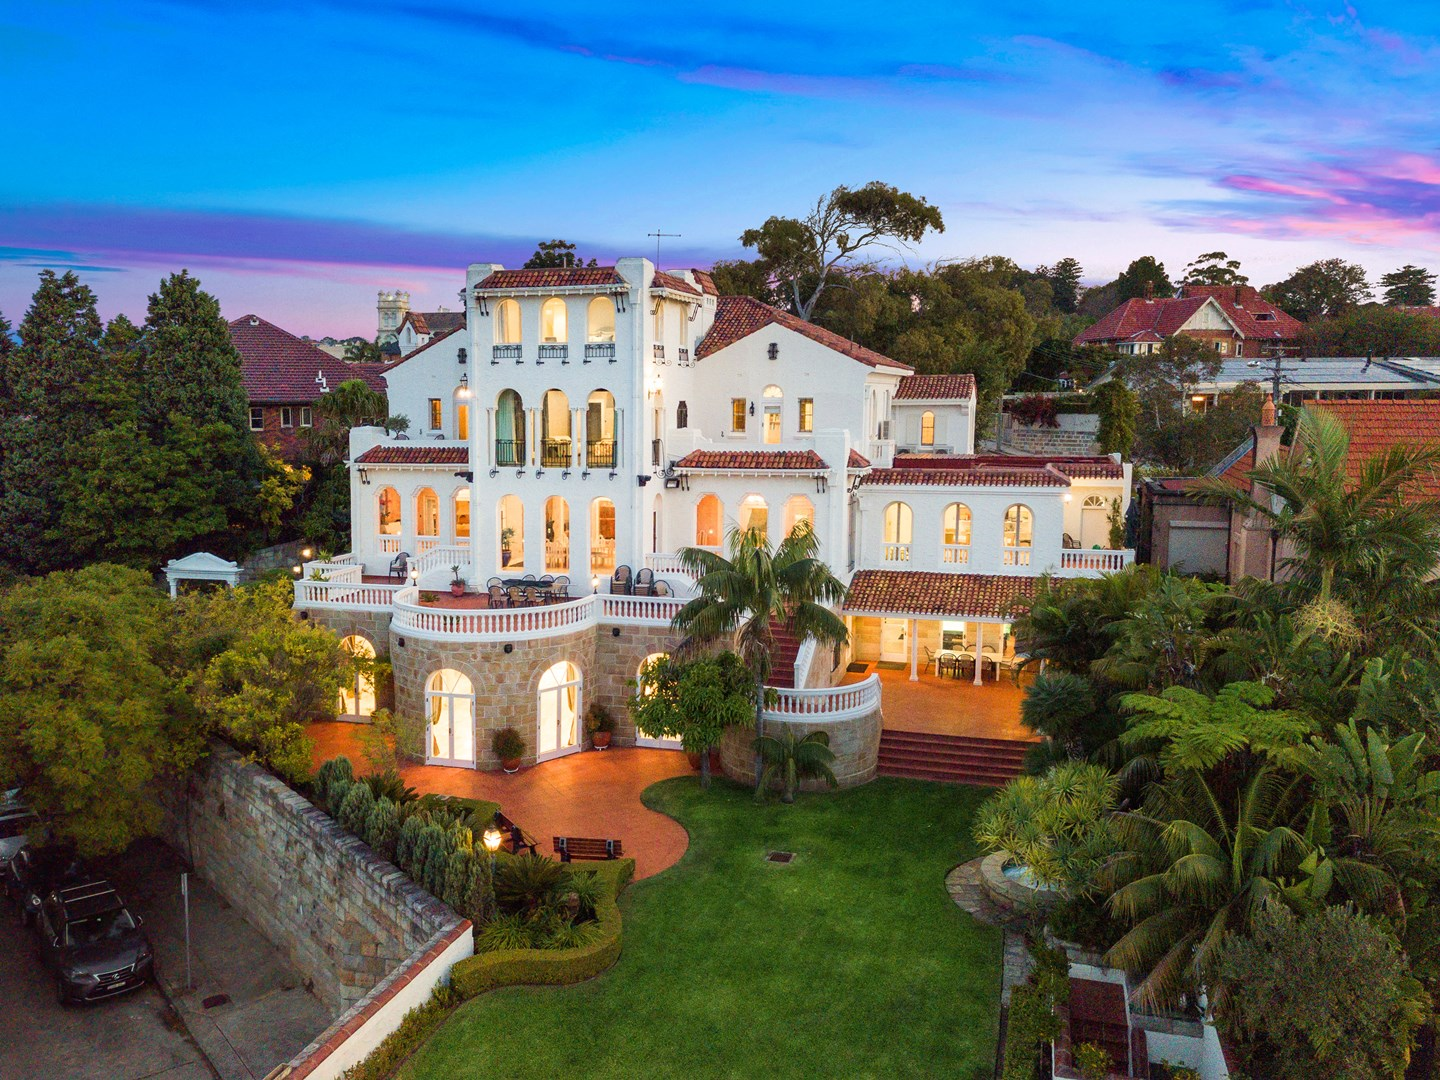 10 Bedroom House For Sale | Bellevue Hill Nsw 2023 10 Beds House For Sale Expressions Of